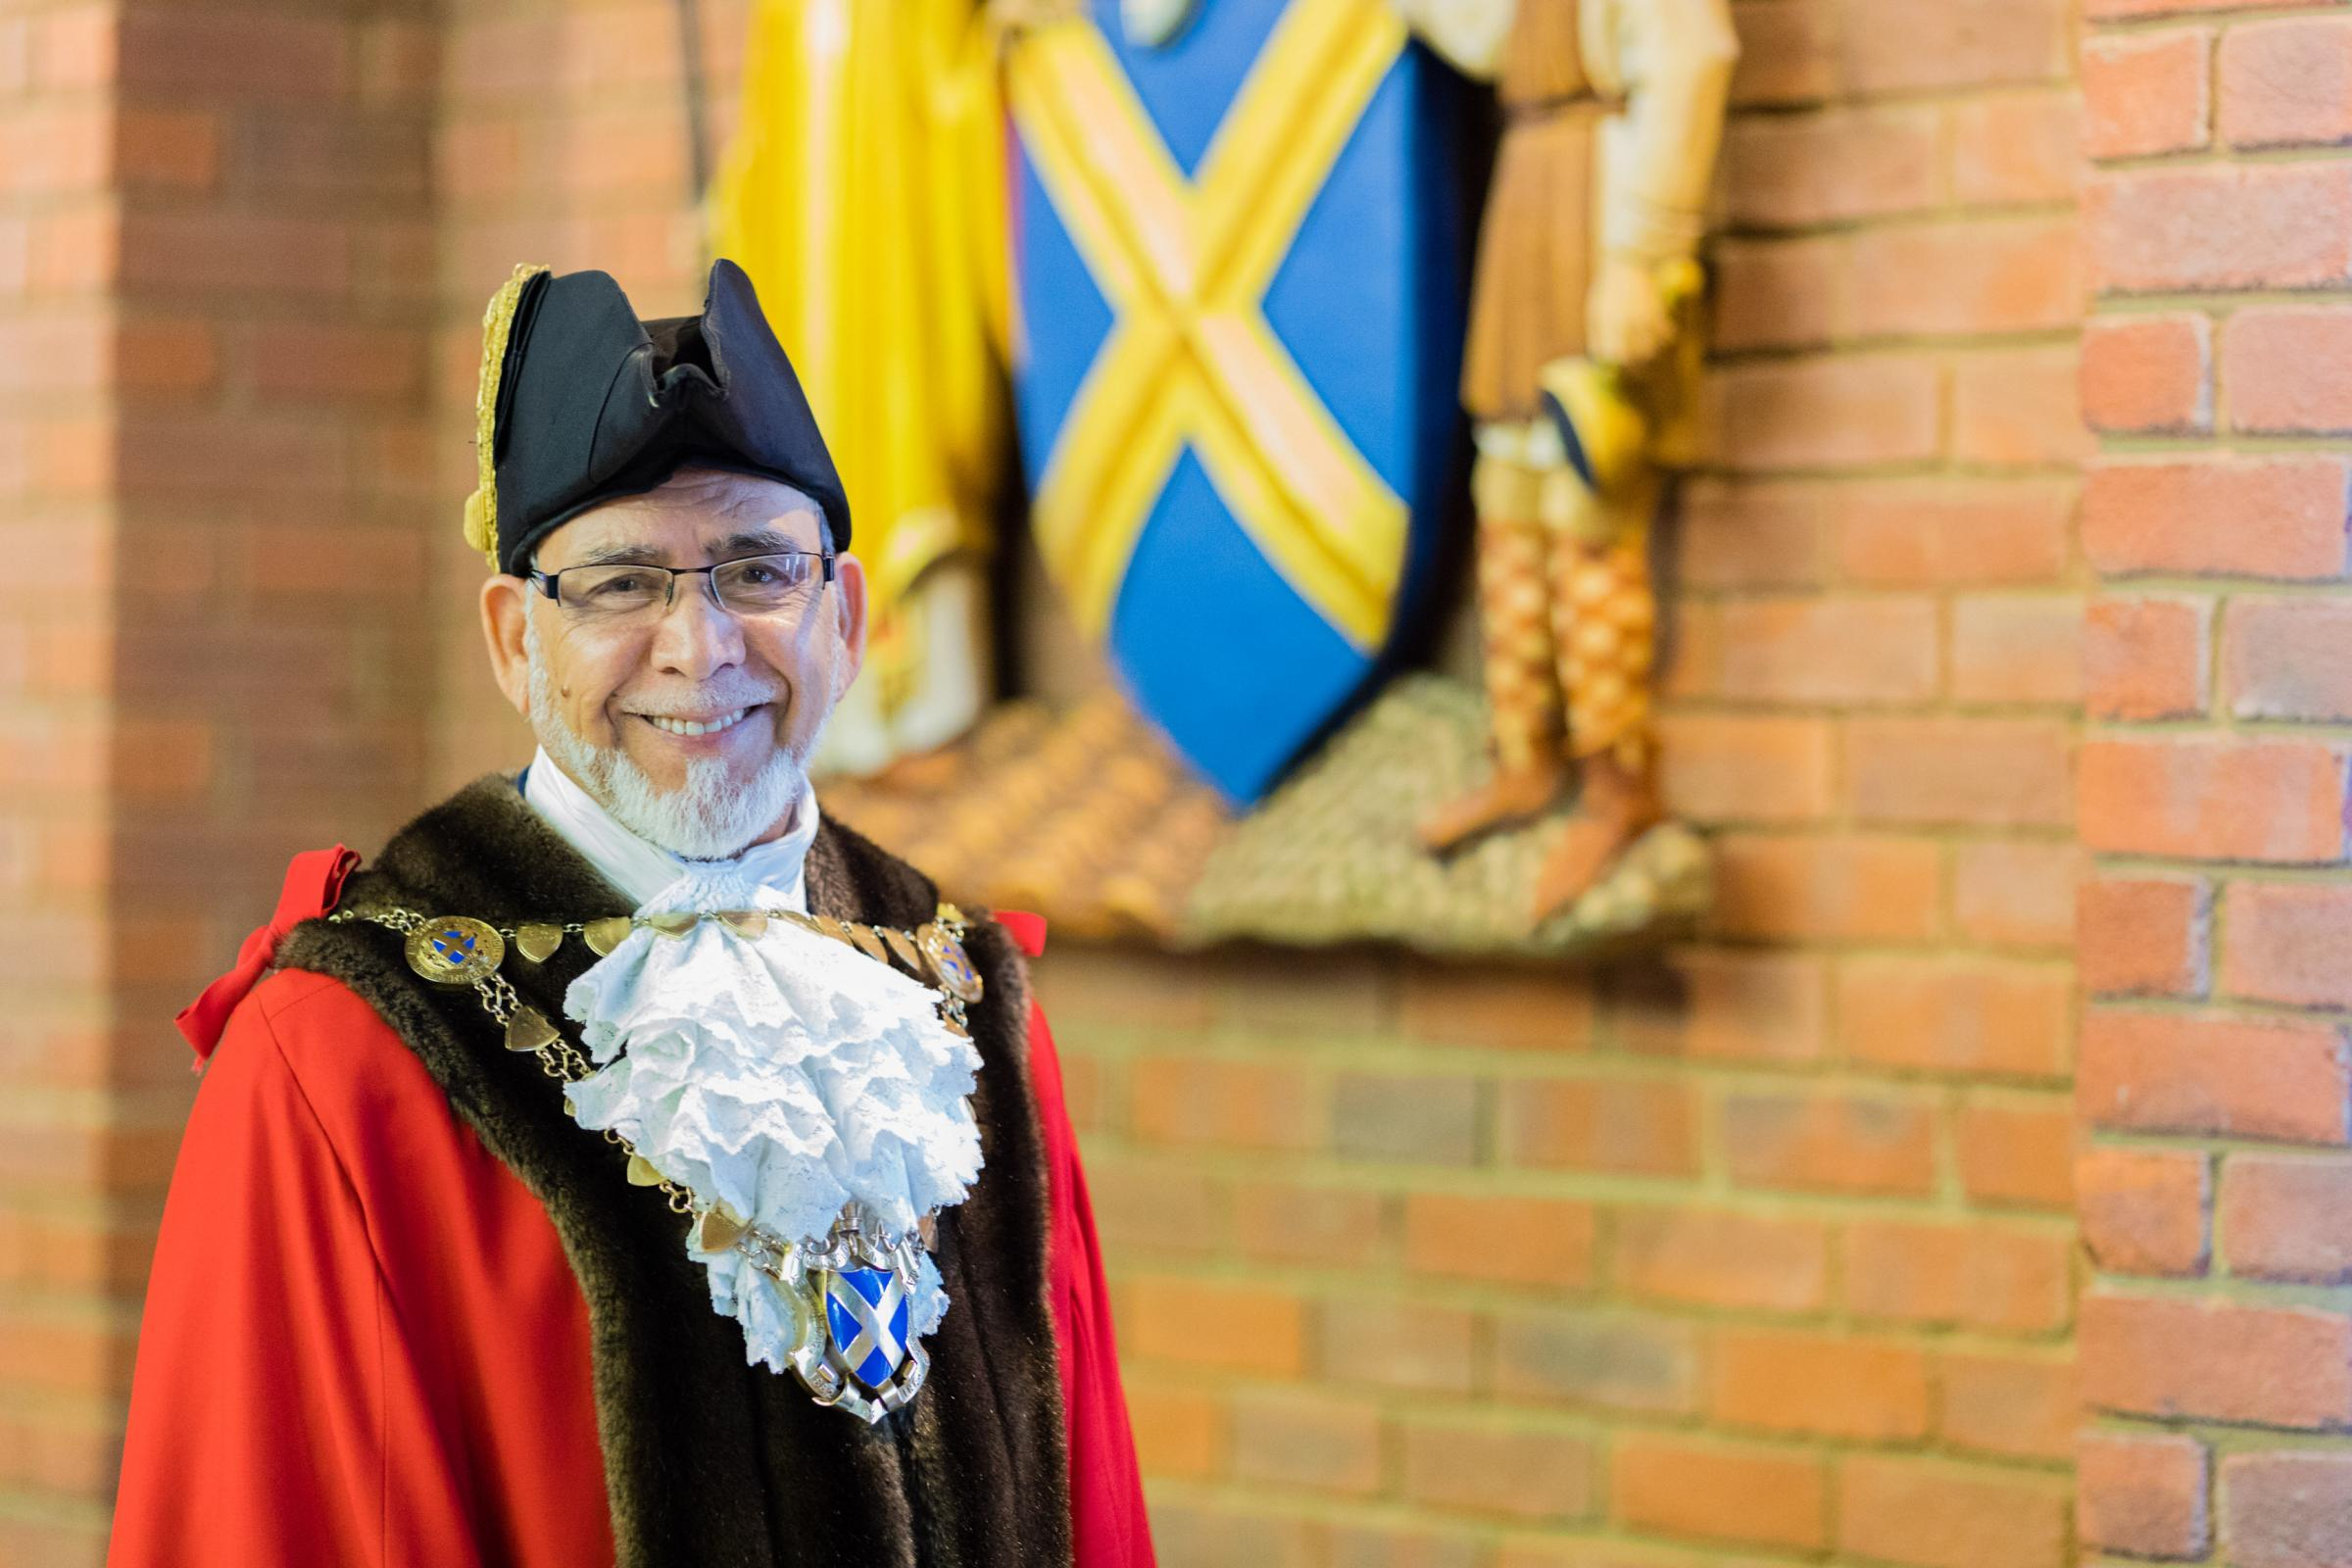 The Mayor of the City and District of St Albans, Cllr Mohammad Iqbal Zia